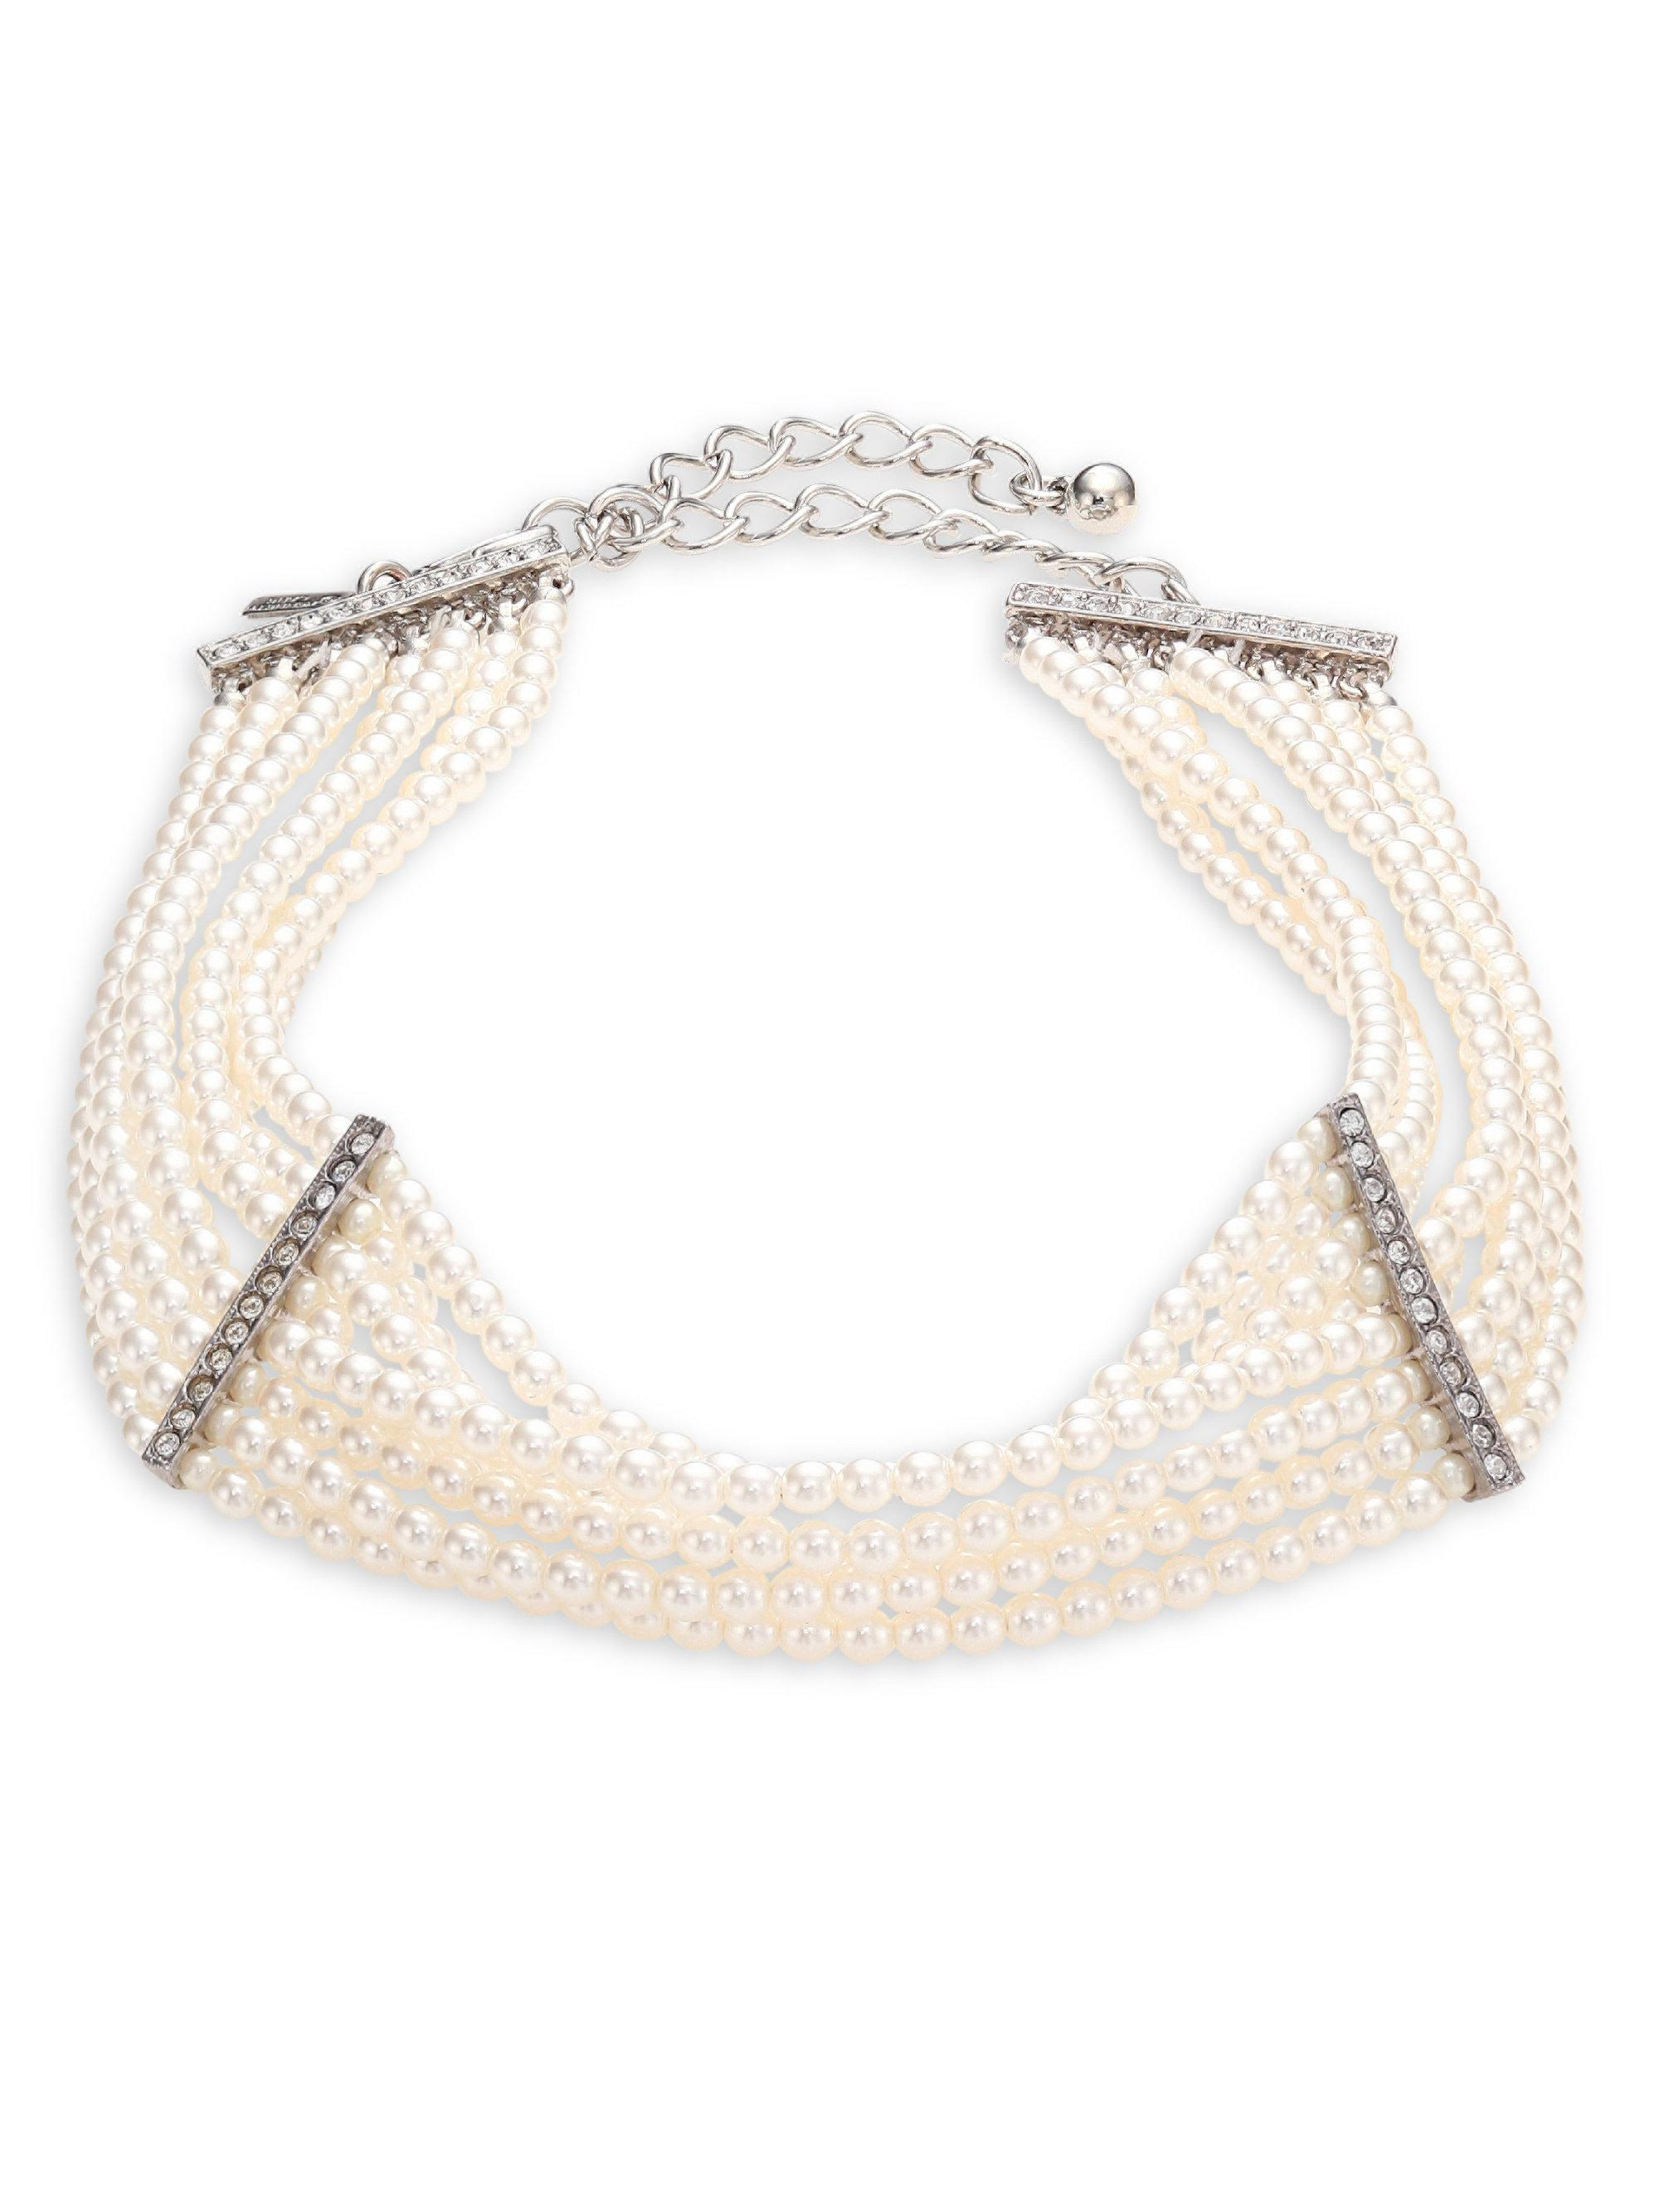 Kenneth Jay Lane 8 Row Silver And Crystal Choker Necklace Pearl rFIiXsVae